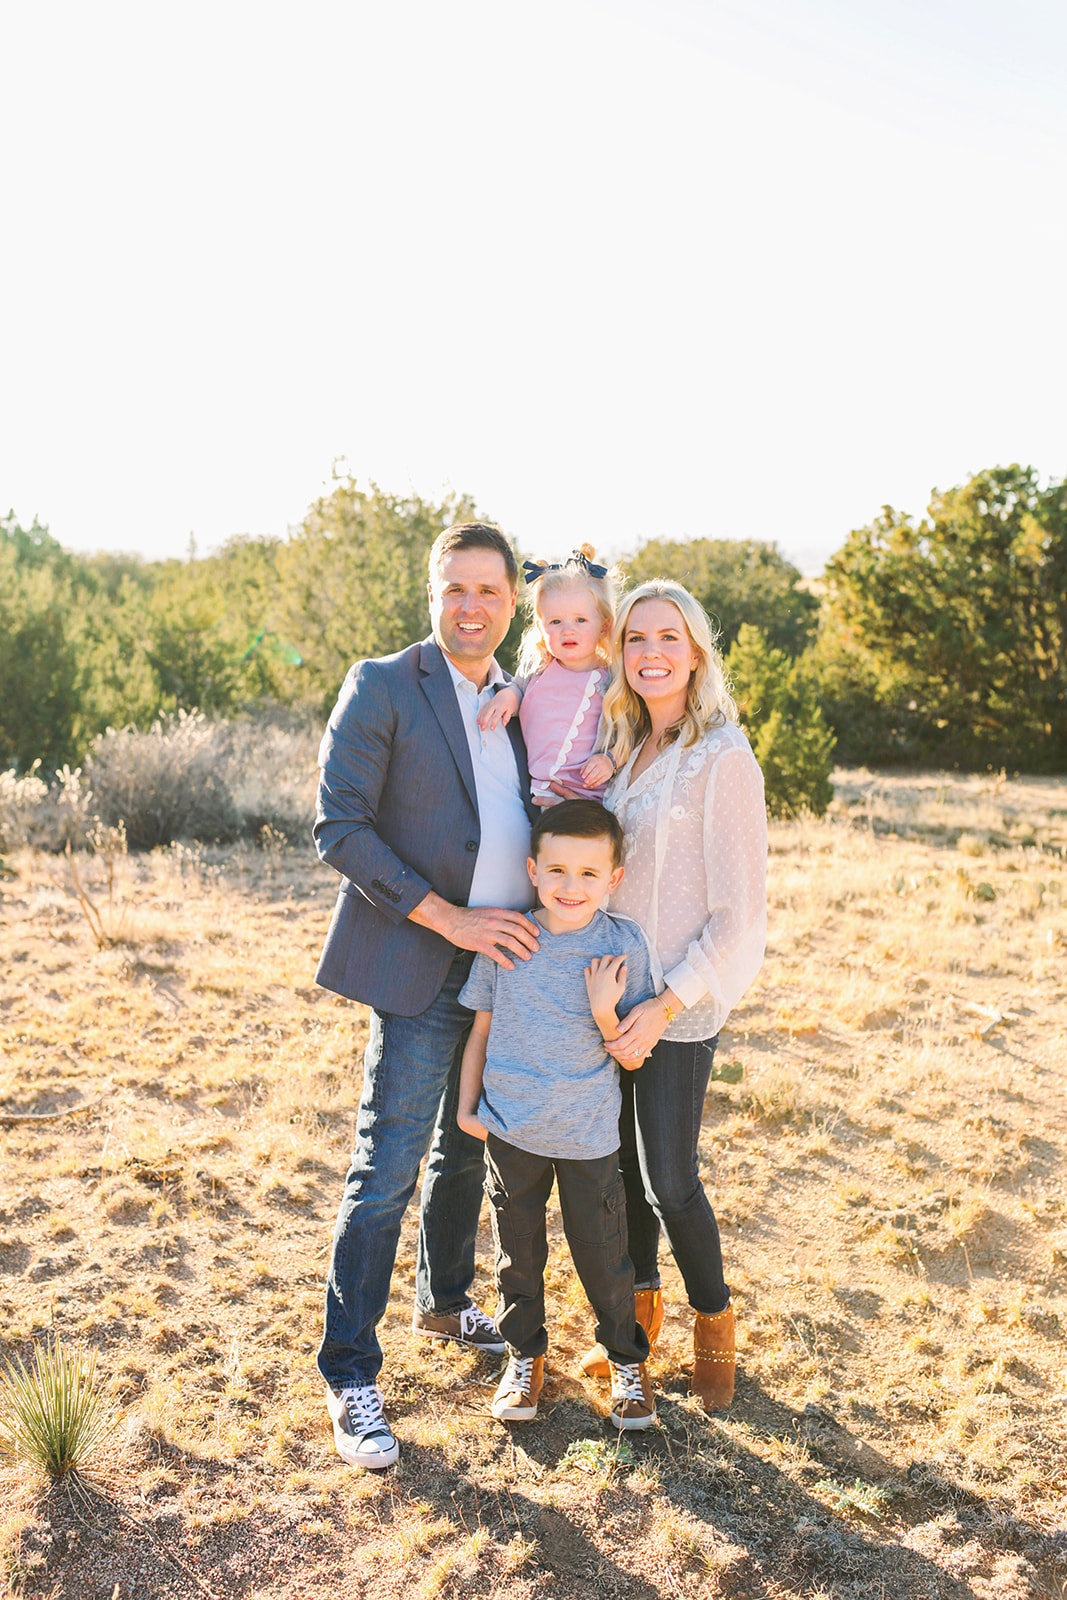 Albuquerque Family Photographer_Foothills_www.tylerbrooke.com_Kate Kauffman_003